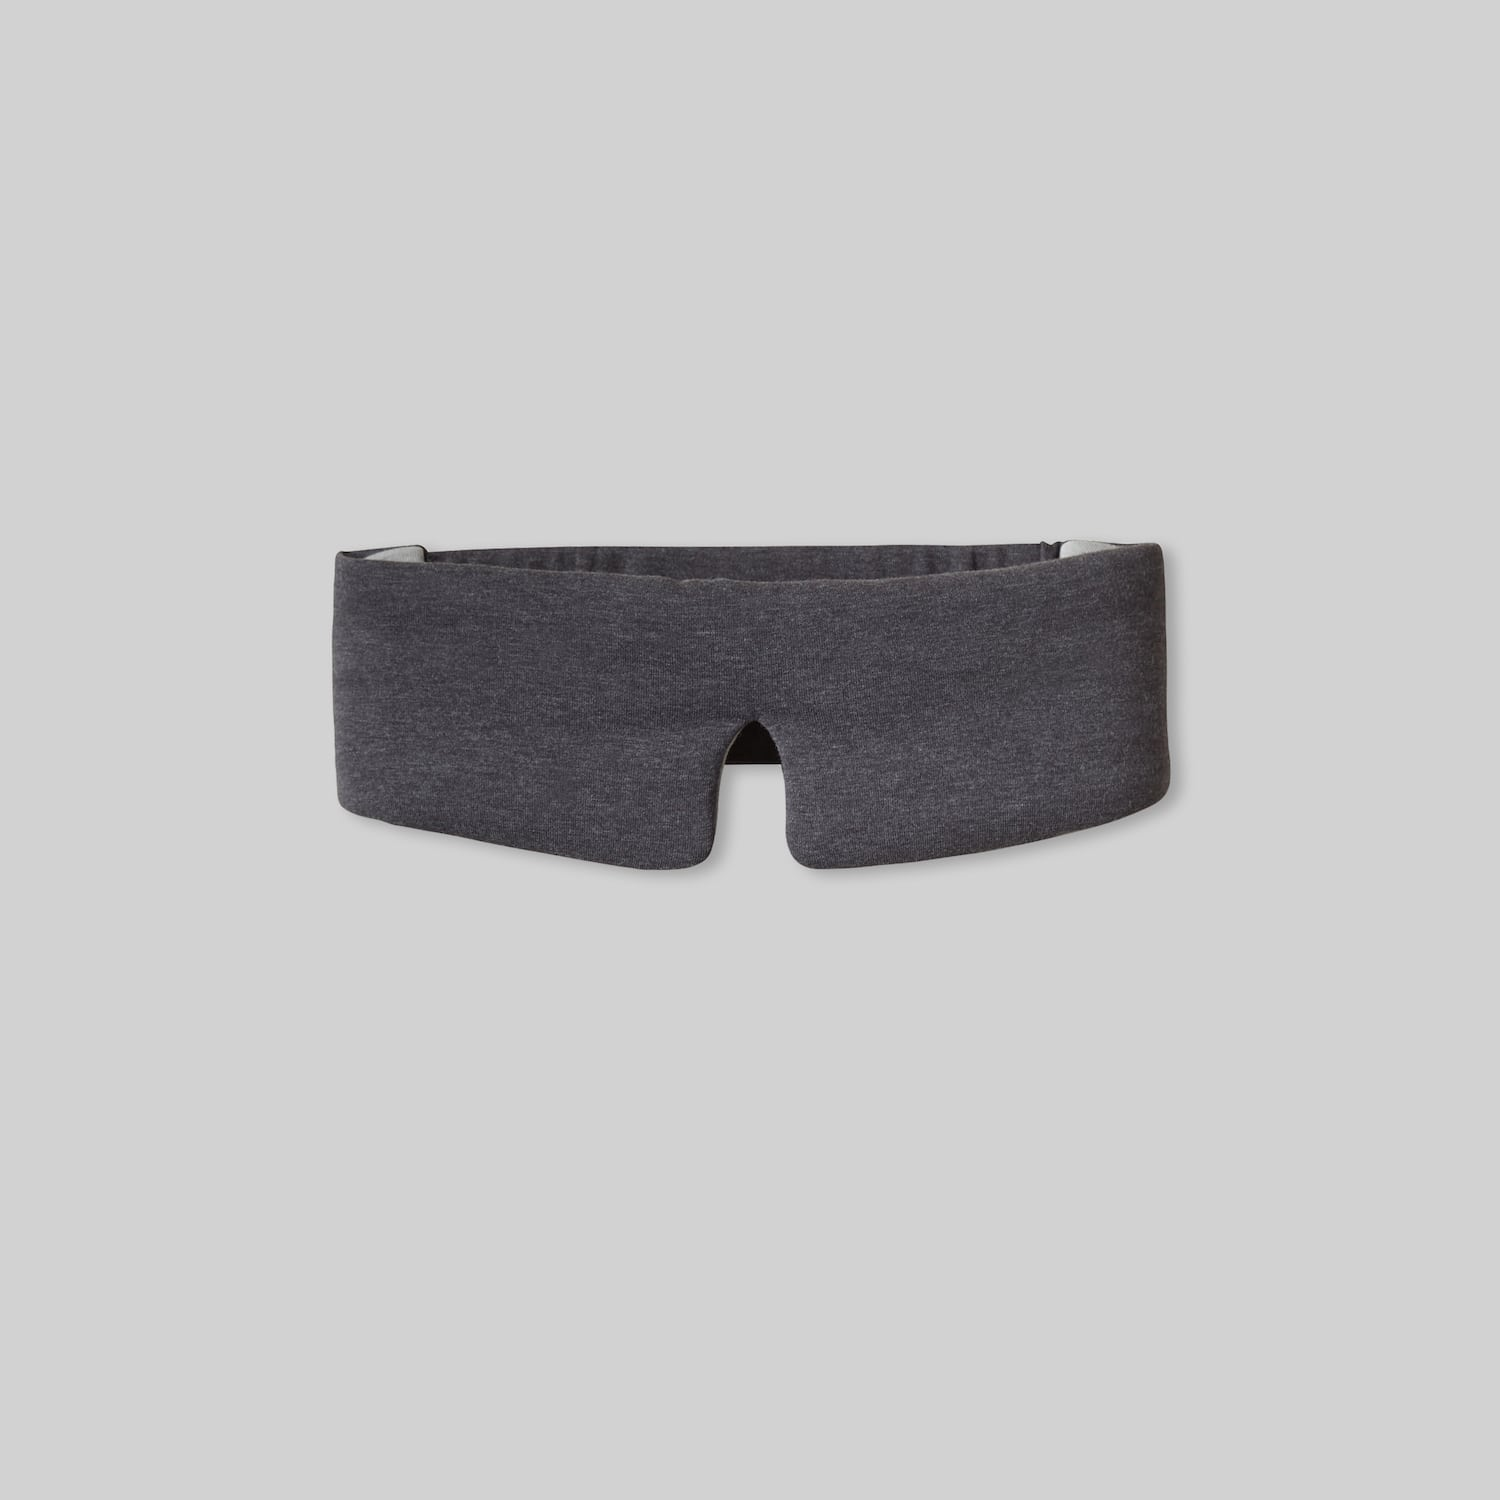 Lahgo Sleepwear Restore Sleep Mask - #Charcoal/Moonstone